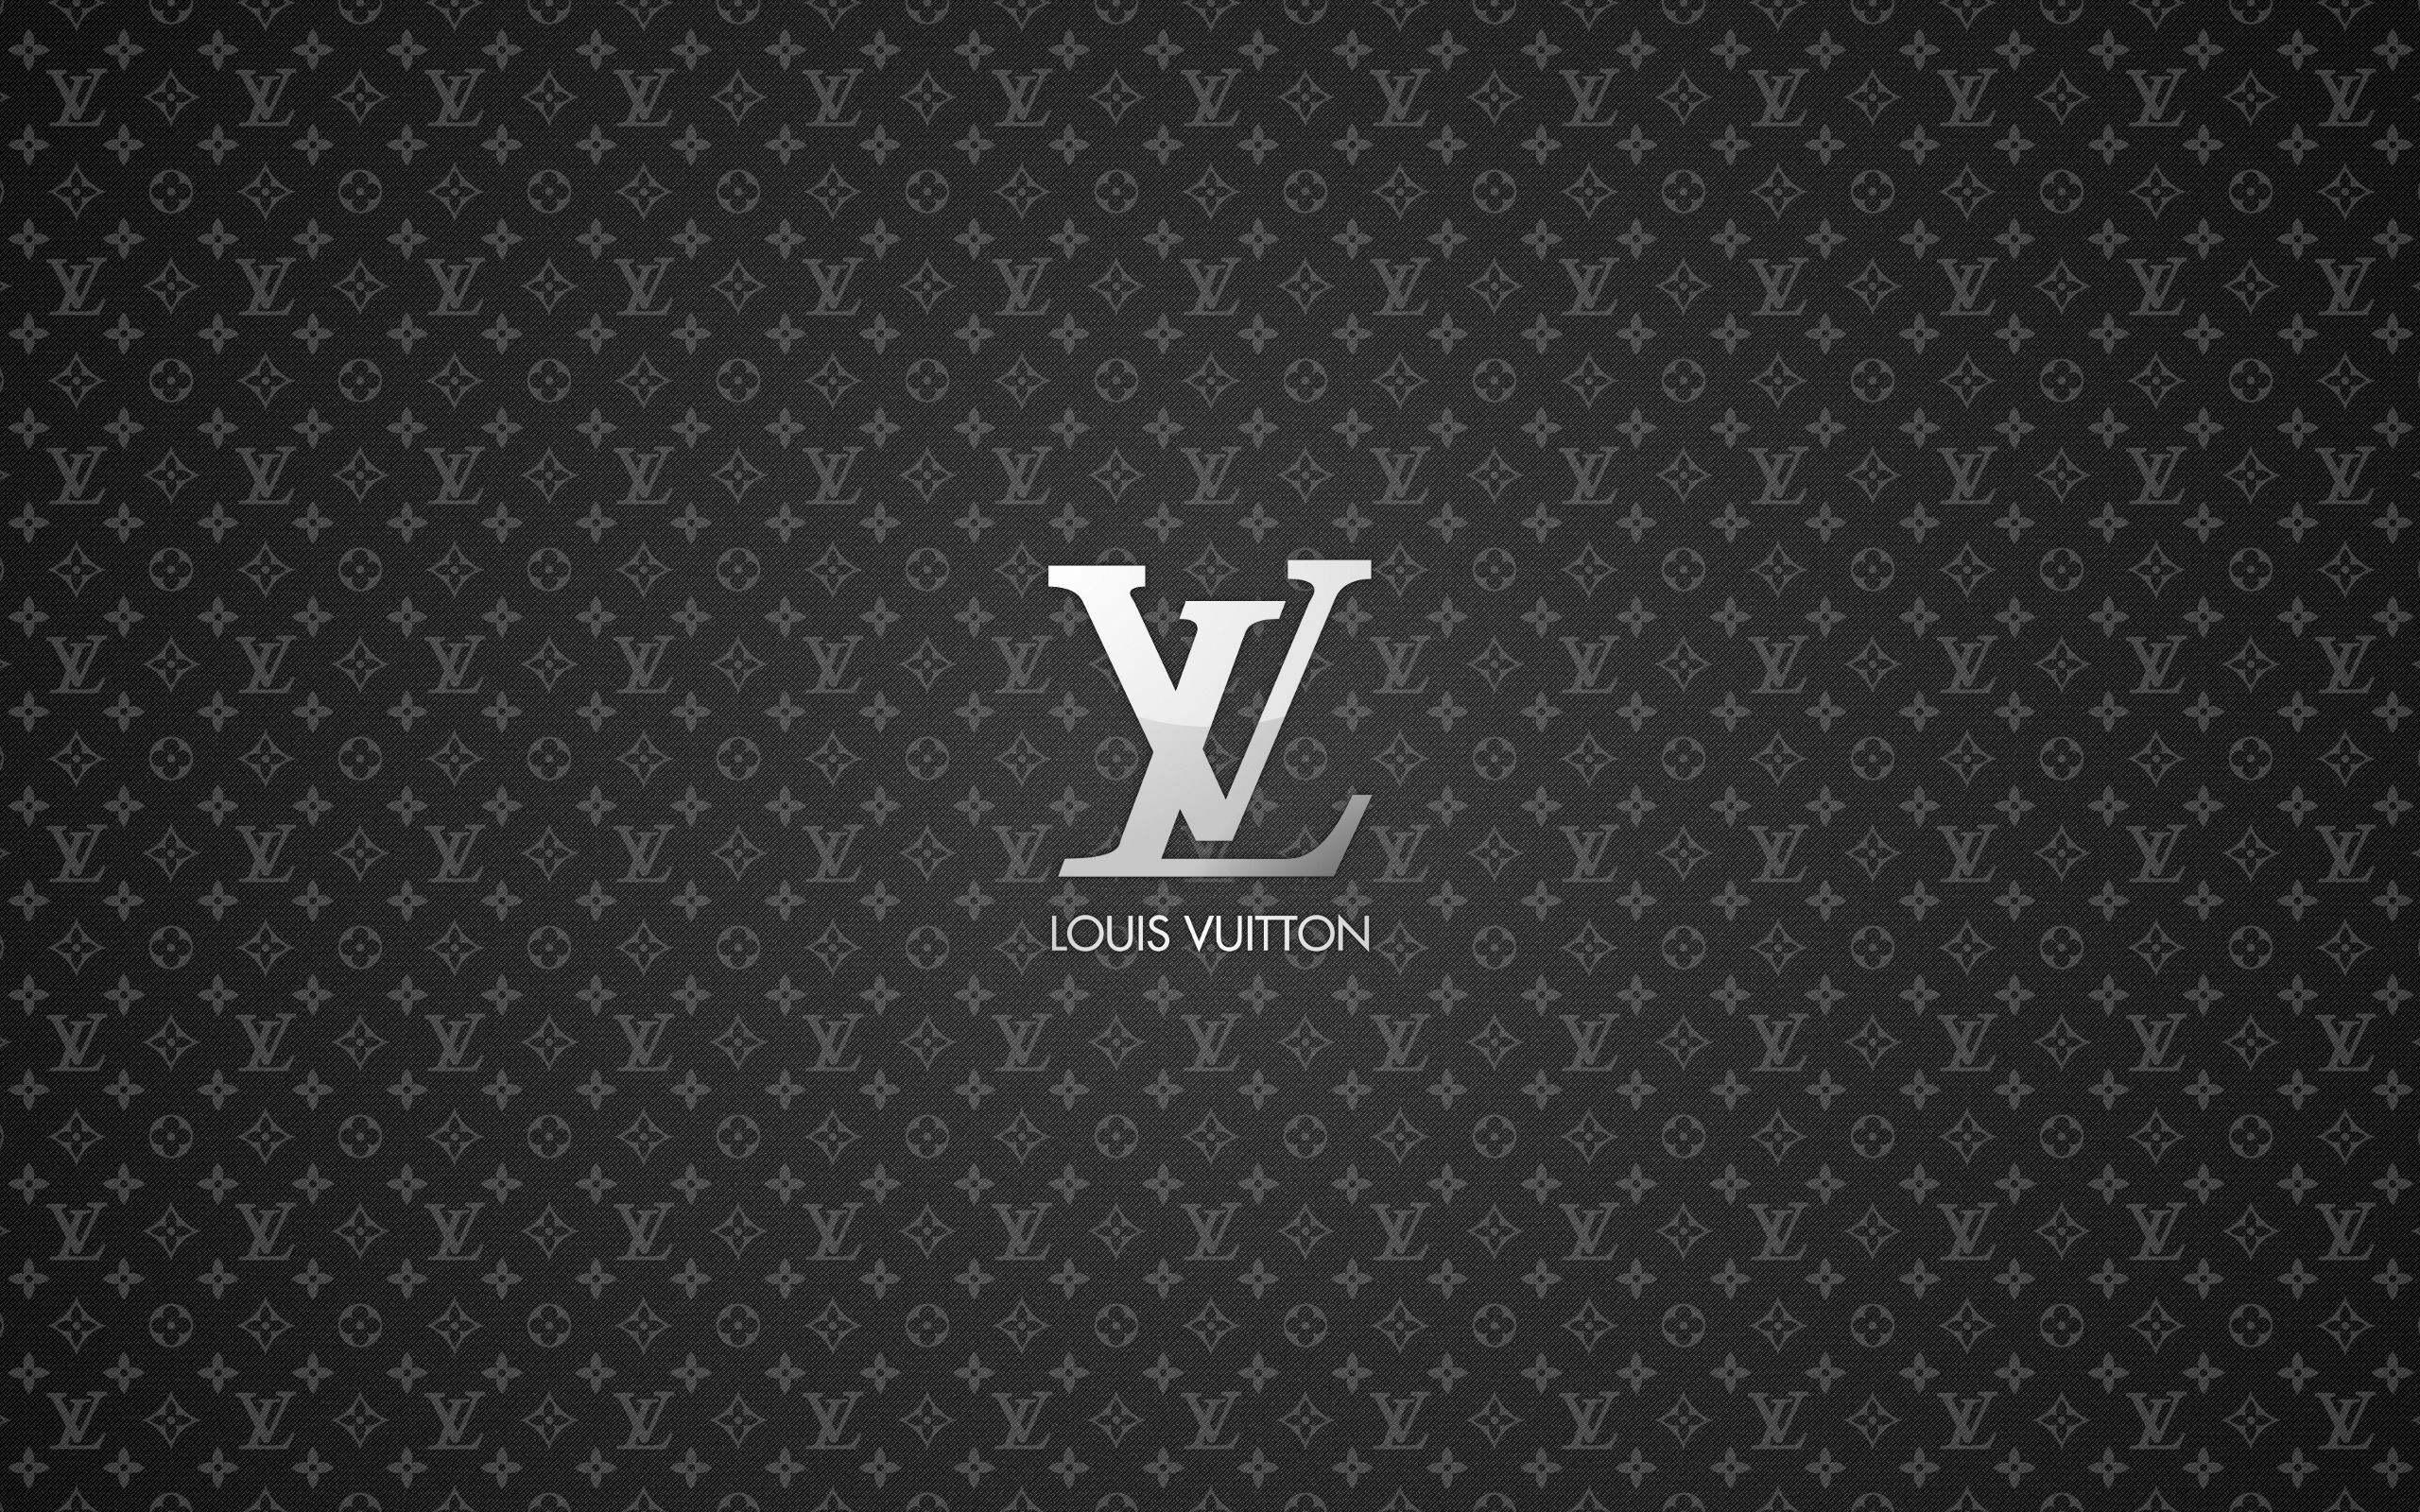 Louis Vuitton Wallpaper Fashion Wallpapers 2560x1600 Background 2560x1600